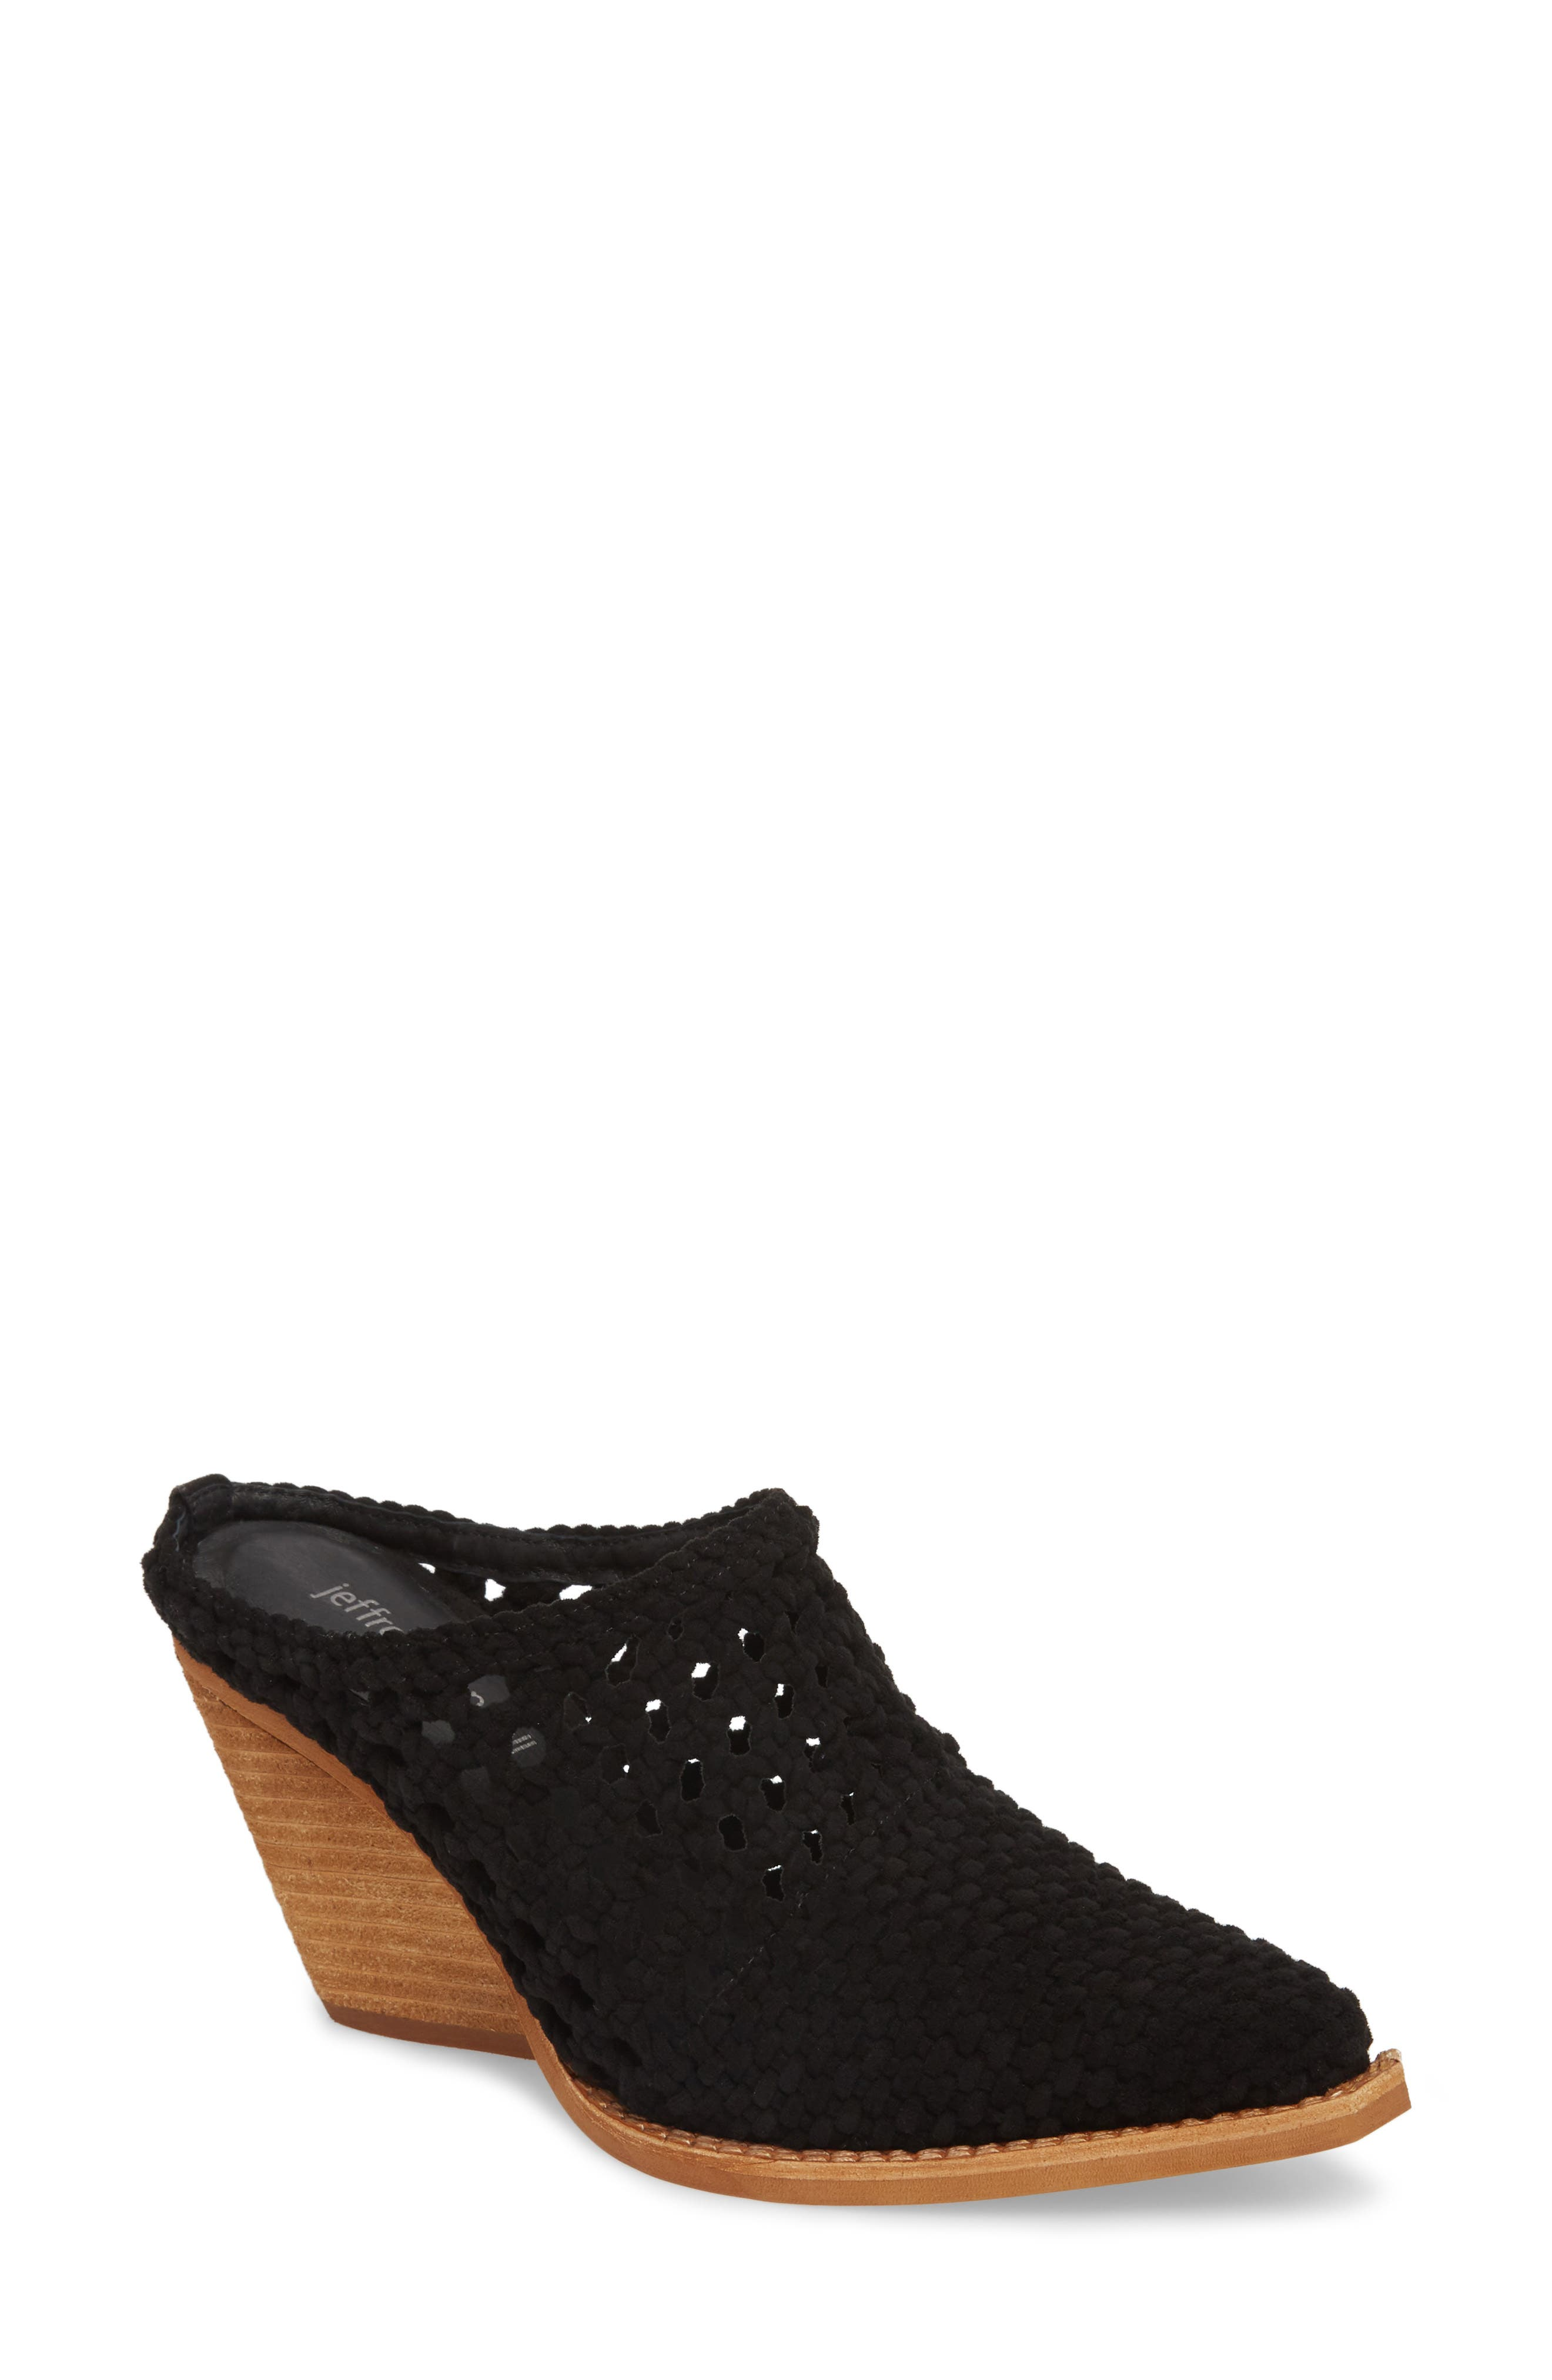 Leona 2 Pointy Toe Mule,                             Main thumbnail 1, color,                             Black Suede